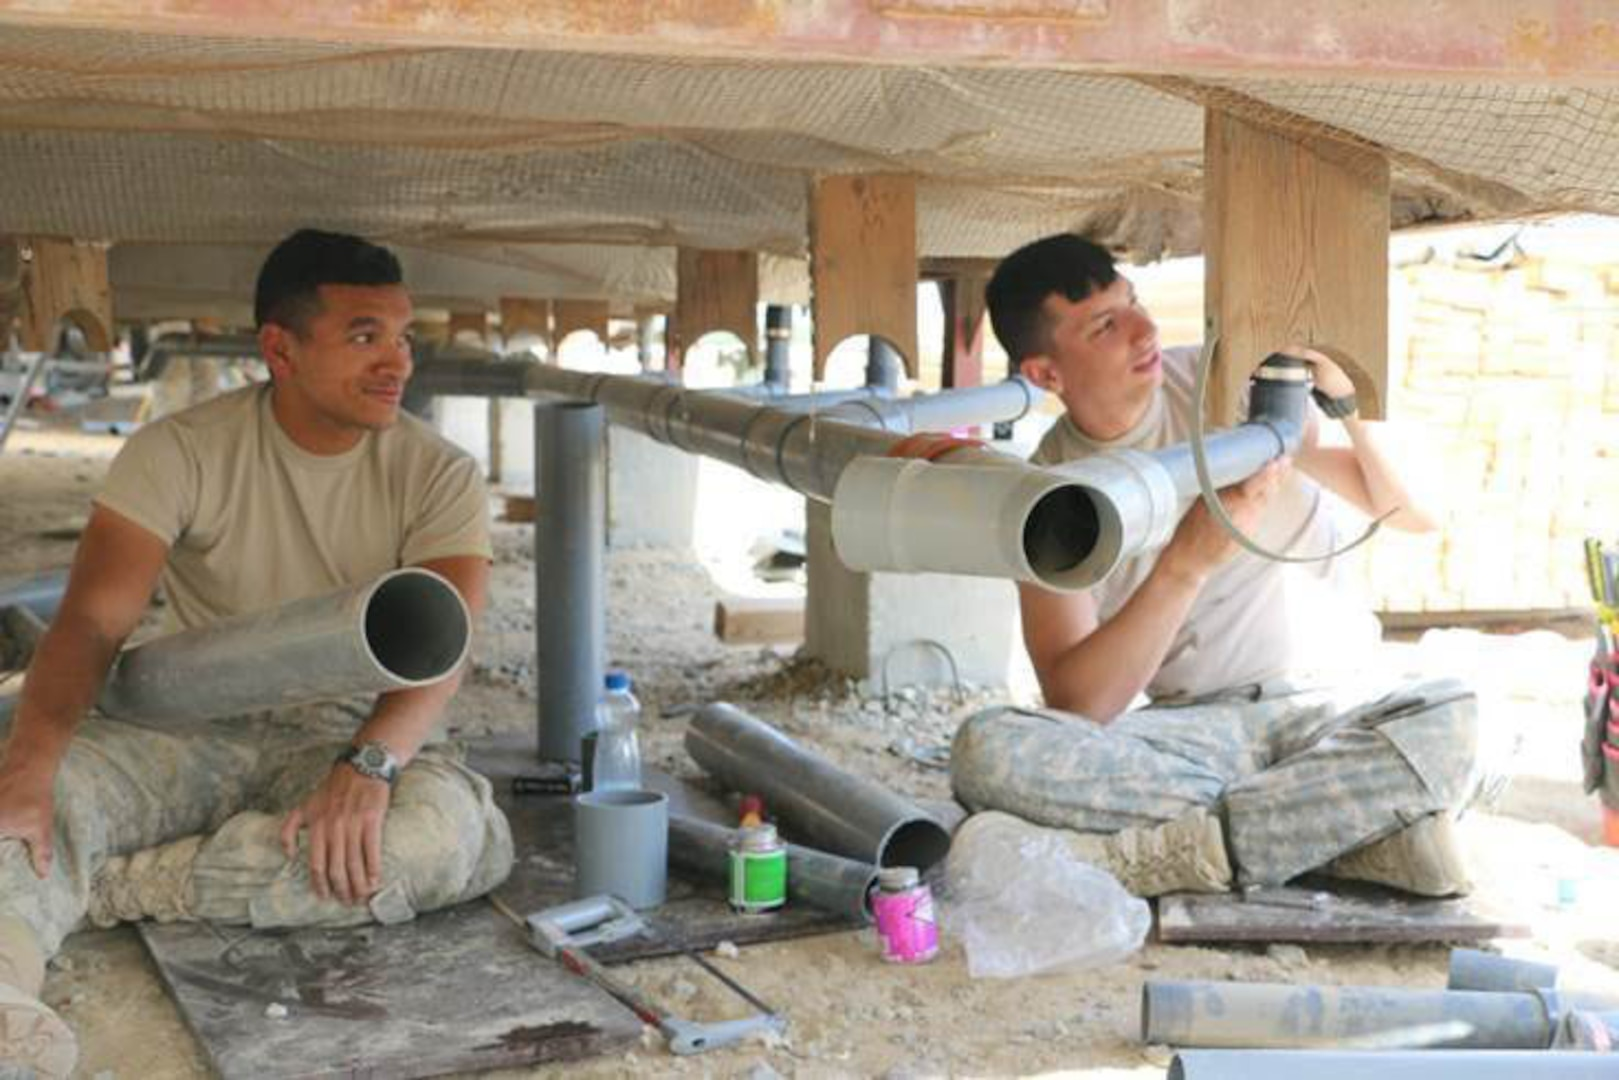 Spc. Zenas Sigrah and Spc. Kevin Lucas work on installing pipe for plumbing in the support trailers recently at Camp Arifjan, Kuwait. The project was part of an effort to expand housing units for Soldiers assigned to Camp Arifjan. The base has seen its numbers increase with the drawdown in Afghanistan and the beginning of Operation Inherent Resolve in Iraq.